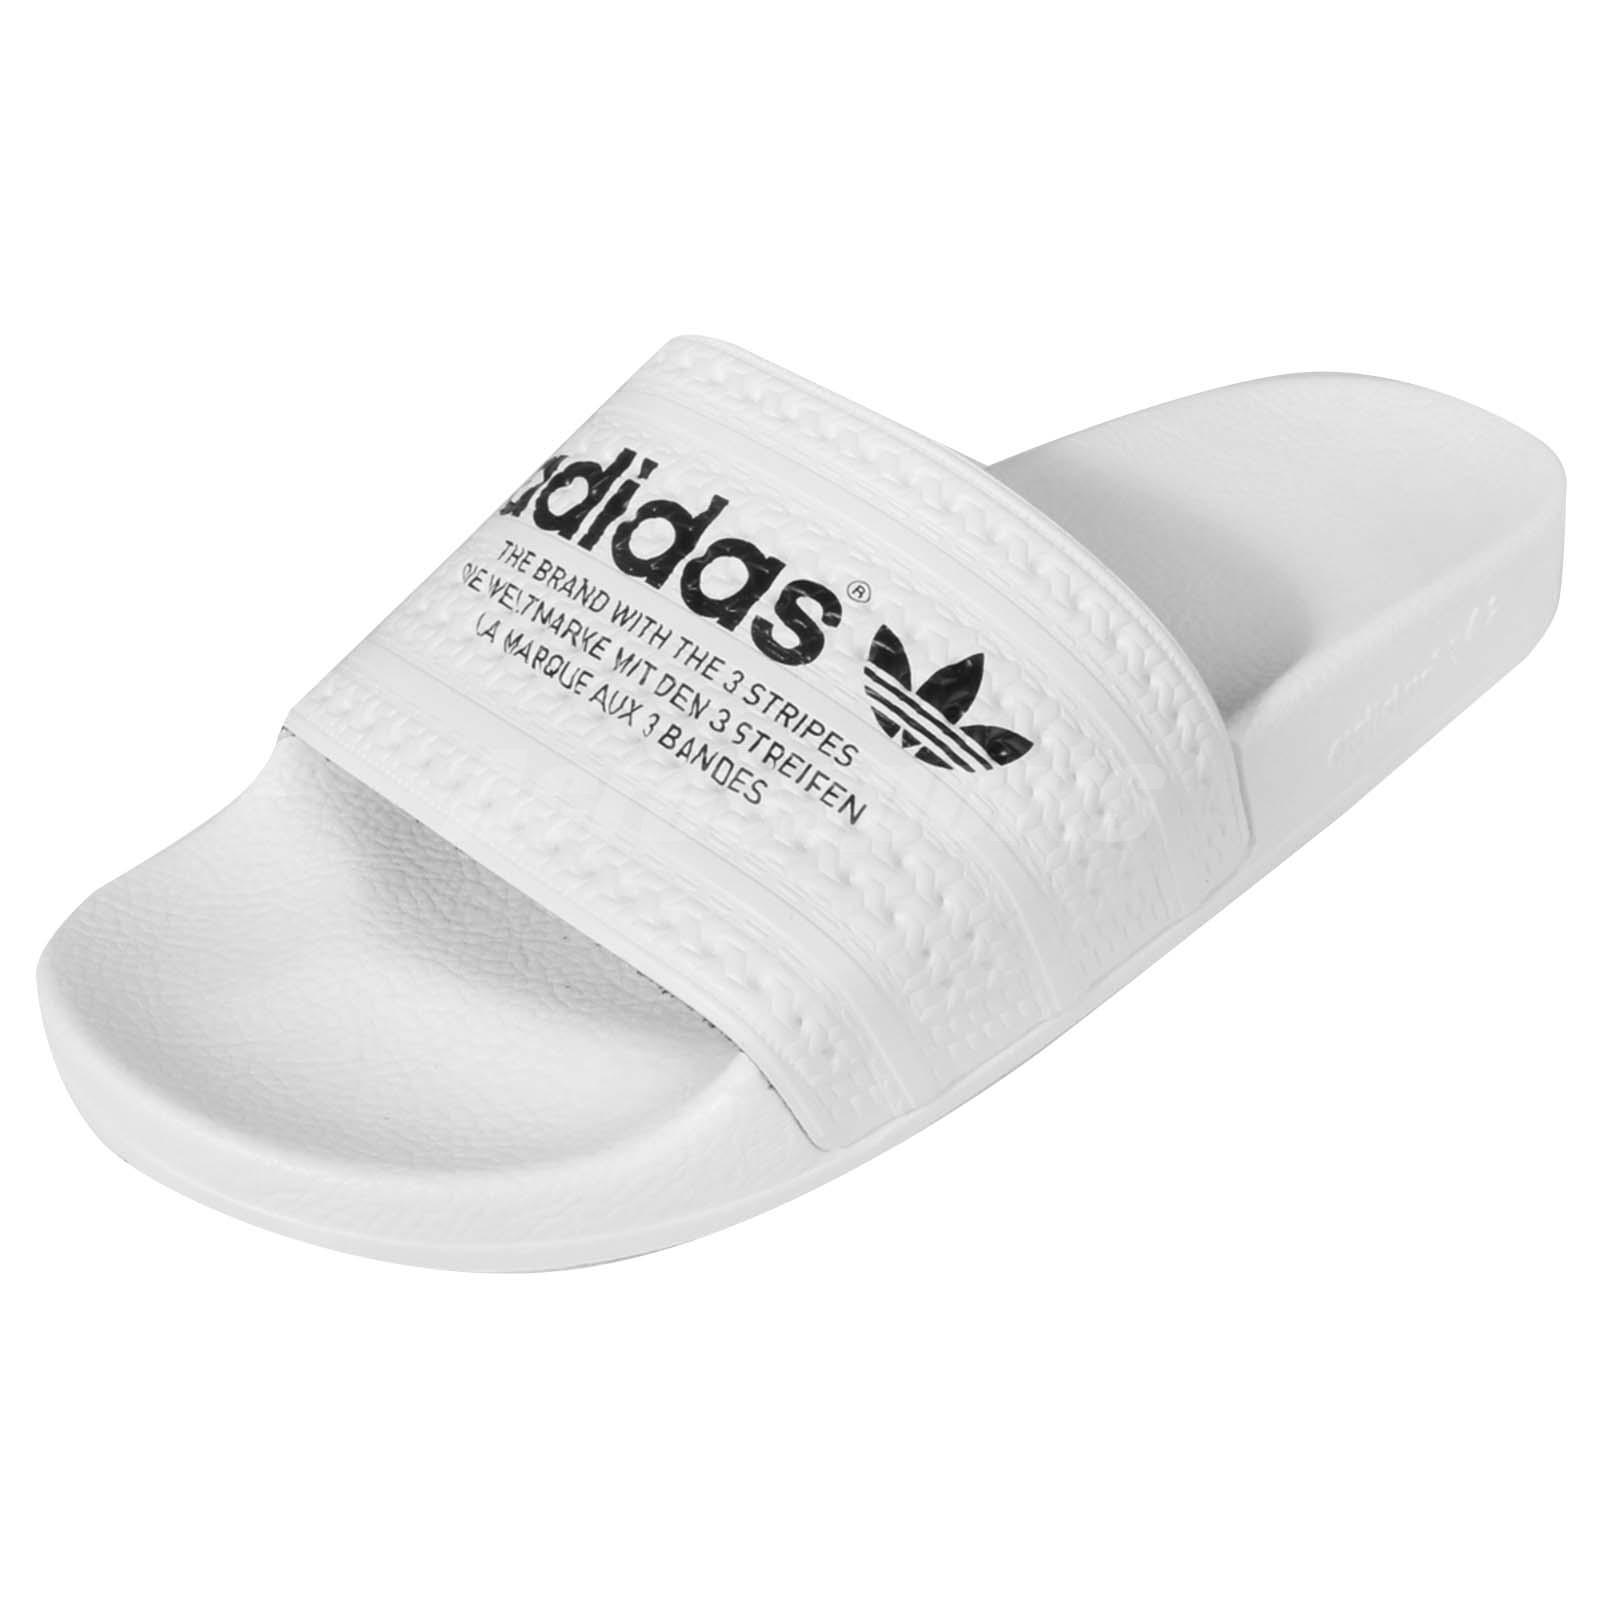 adidas Originals Adilette White Black Mens Sandal Slides Slippers S78688 | eBay